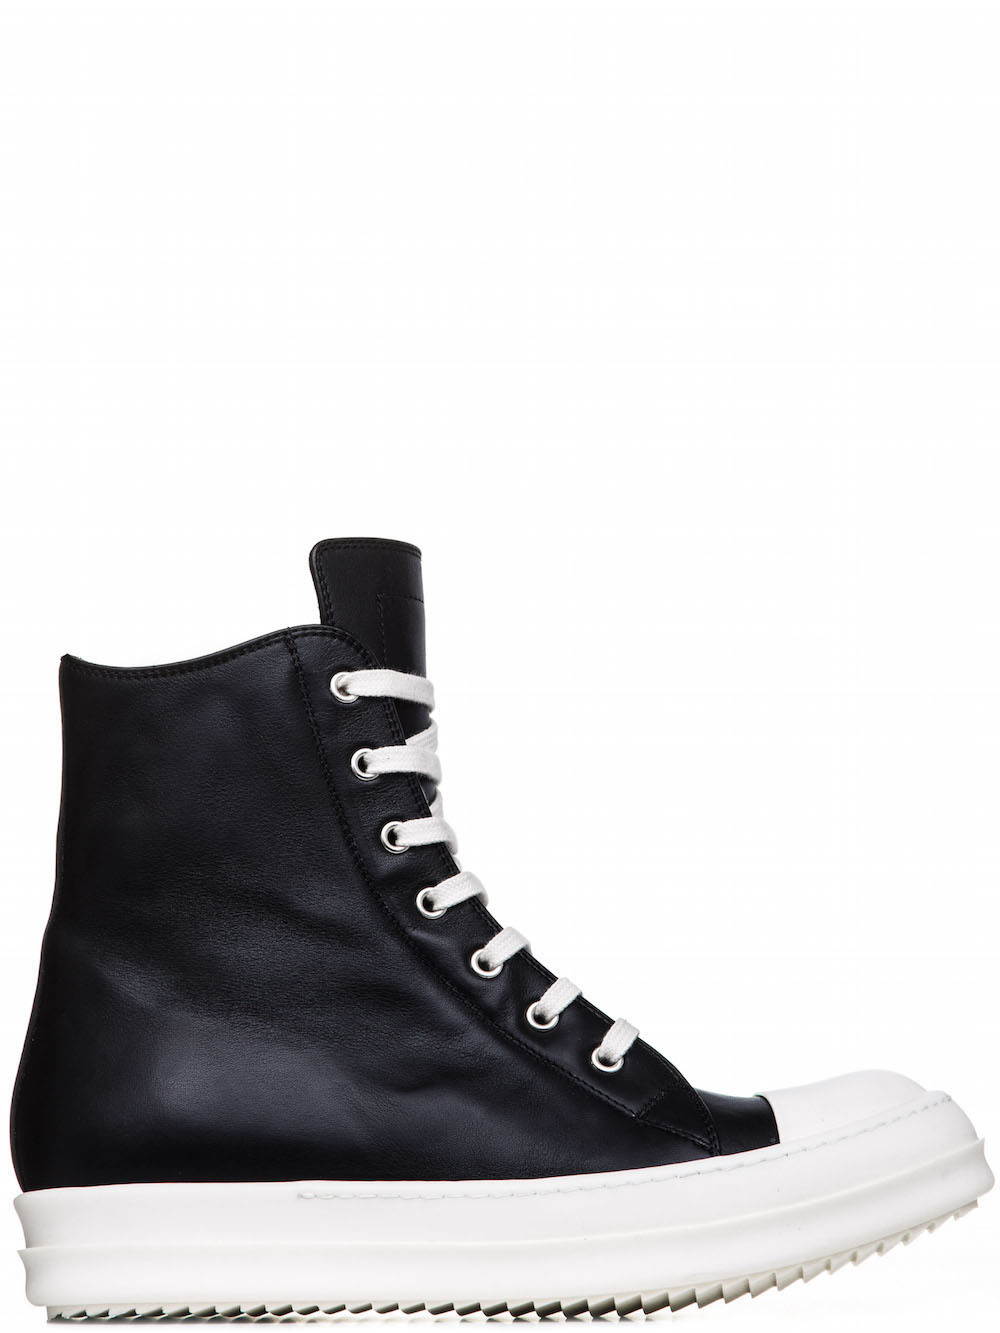 RICK OWENS SNEAKERS IN BLACK CALF LEATHER